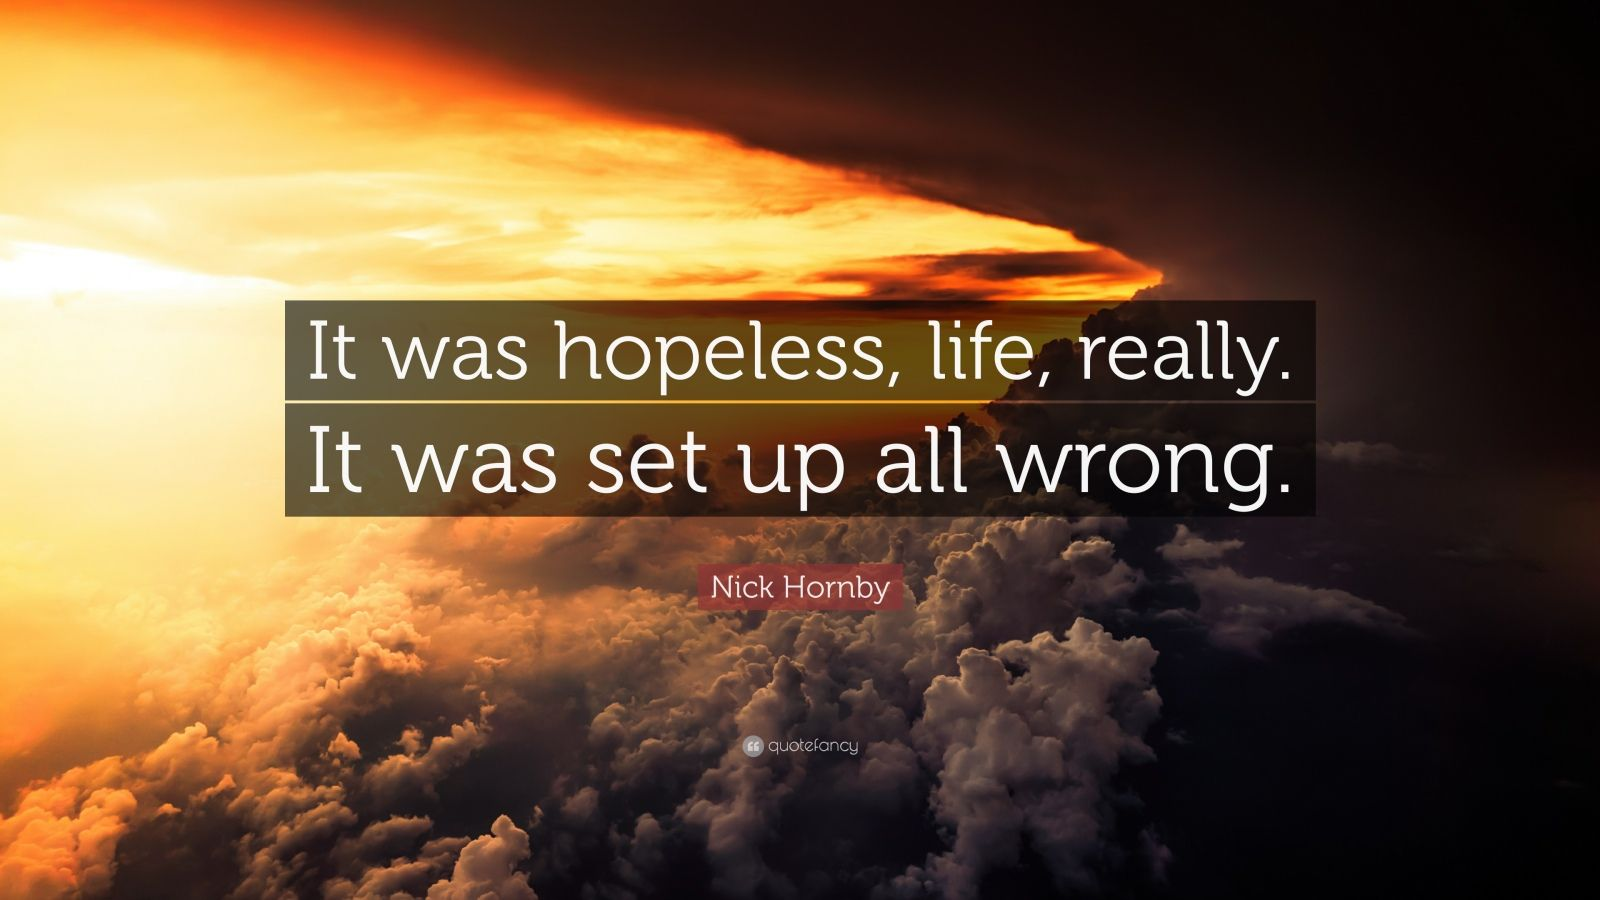 """Nick Hornby Quote: """"It was hopeless, life, really. It was set up all wrong."""""""